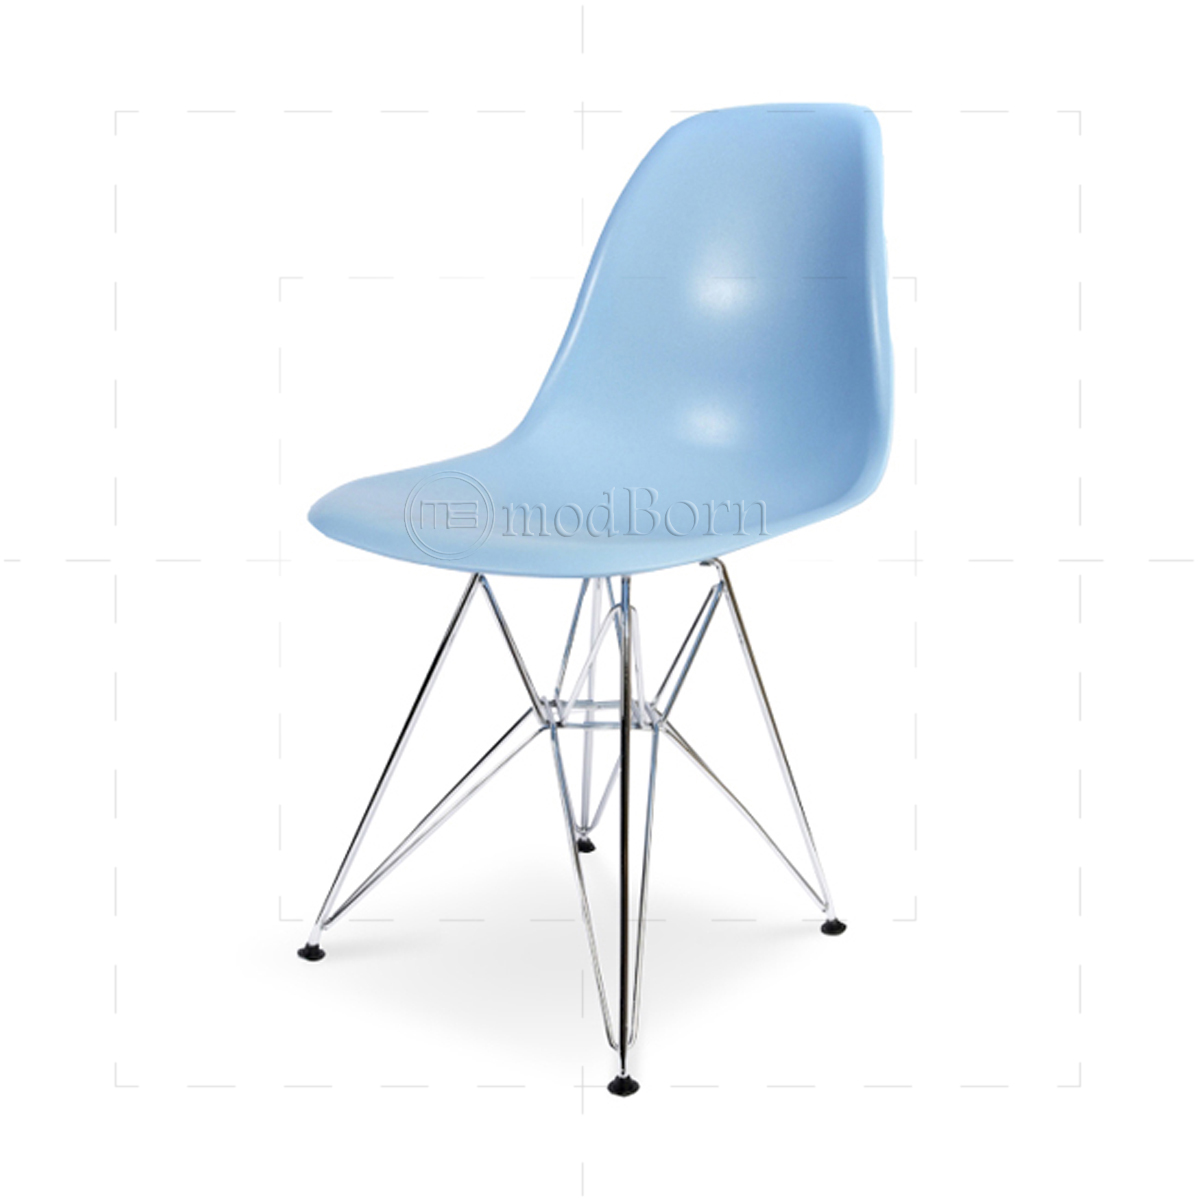 Eames style dining dsr eiffel chair blue replica for Eames chair replica deutschland